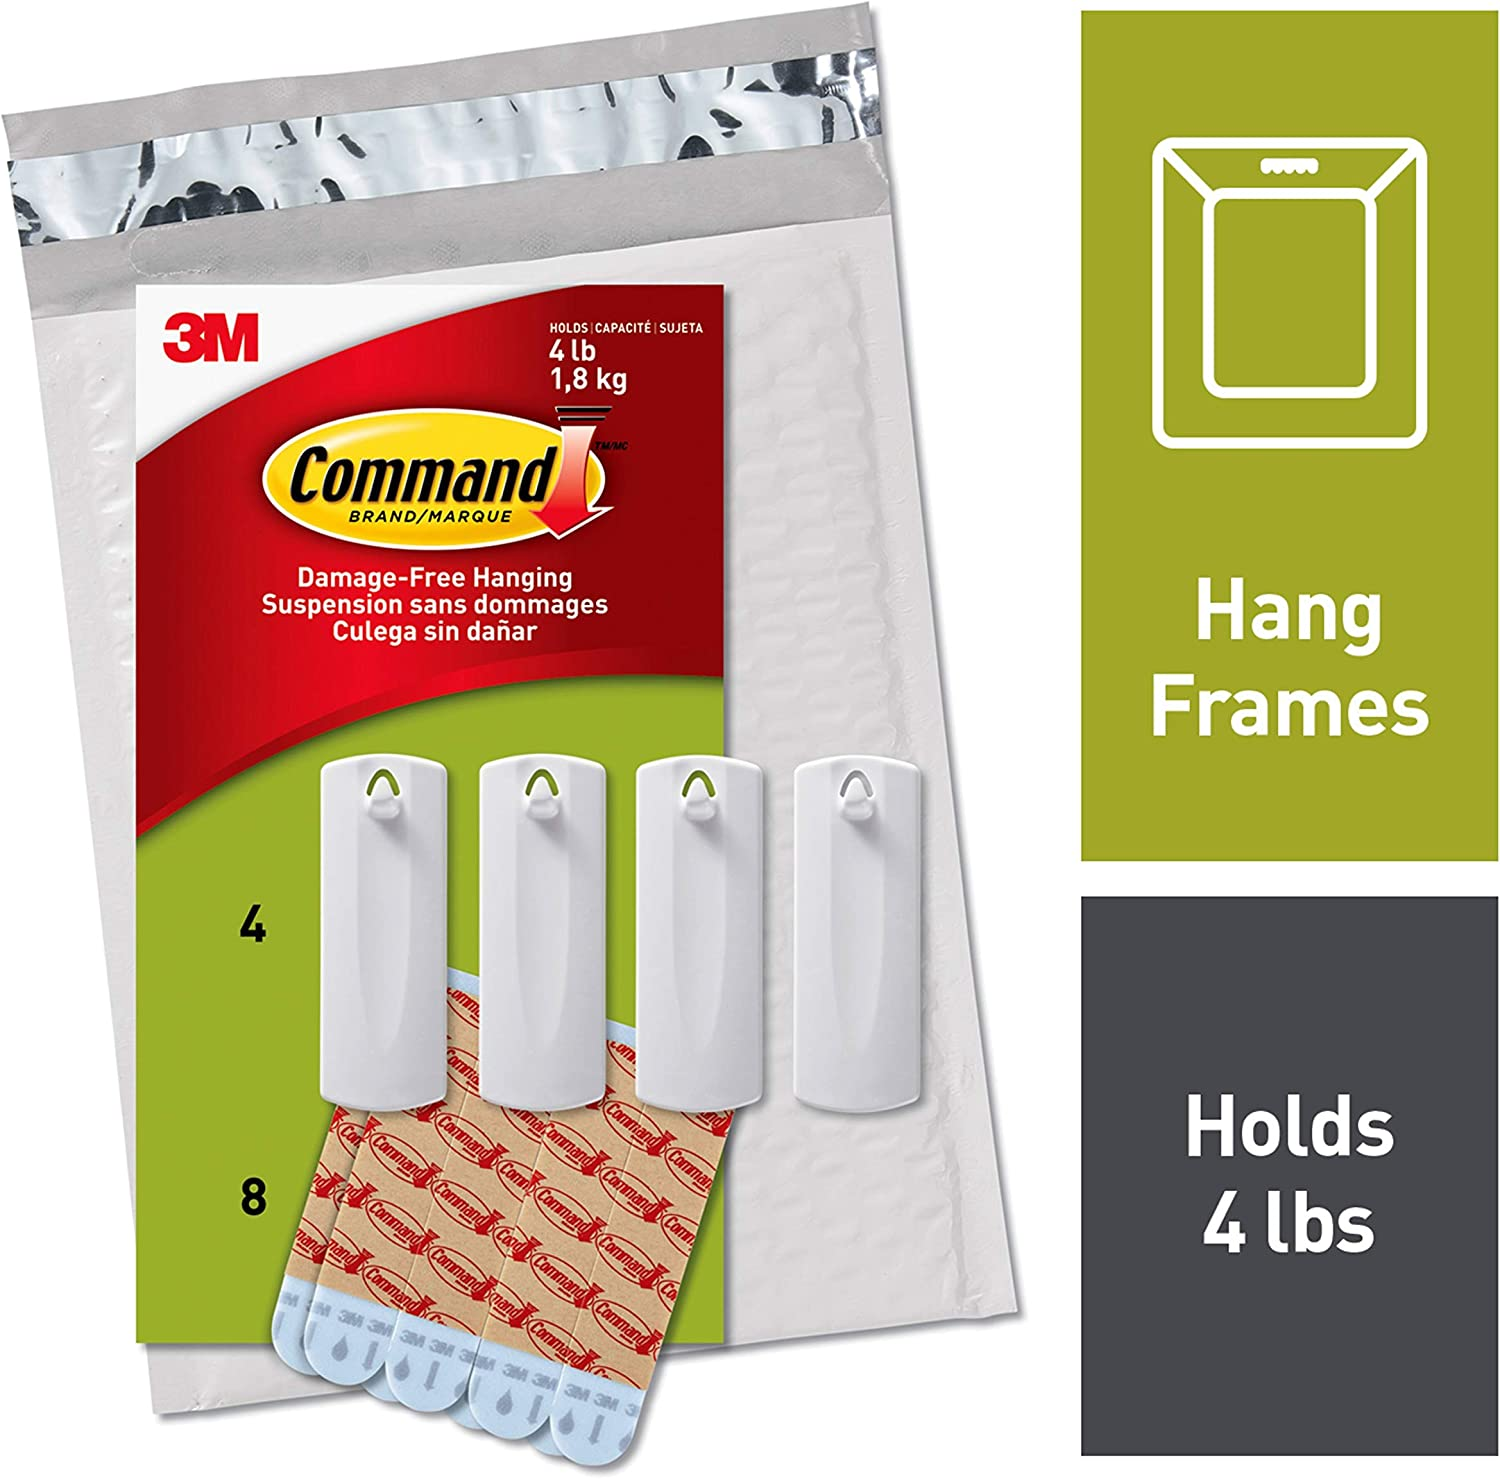 Sawtooth Adhesive Hangers For Pictures 4 Pack